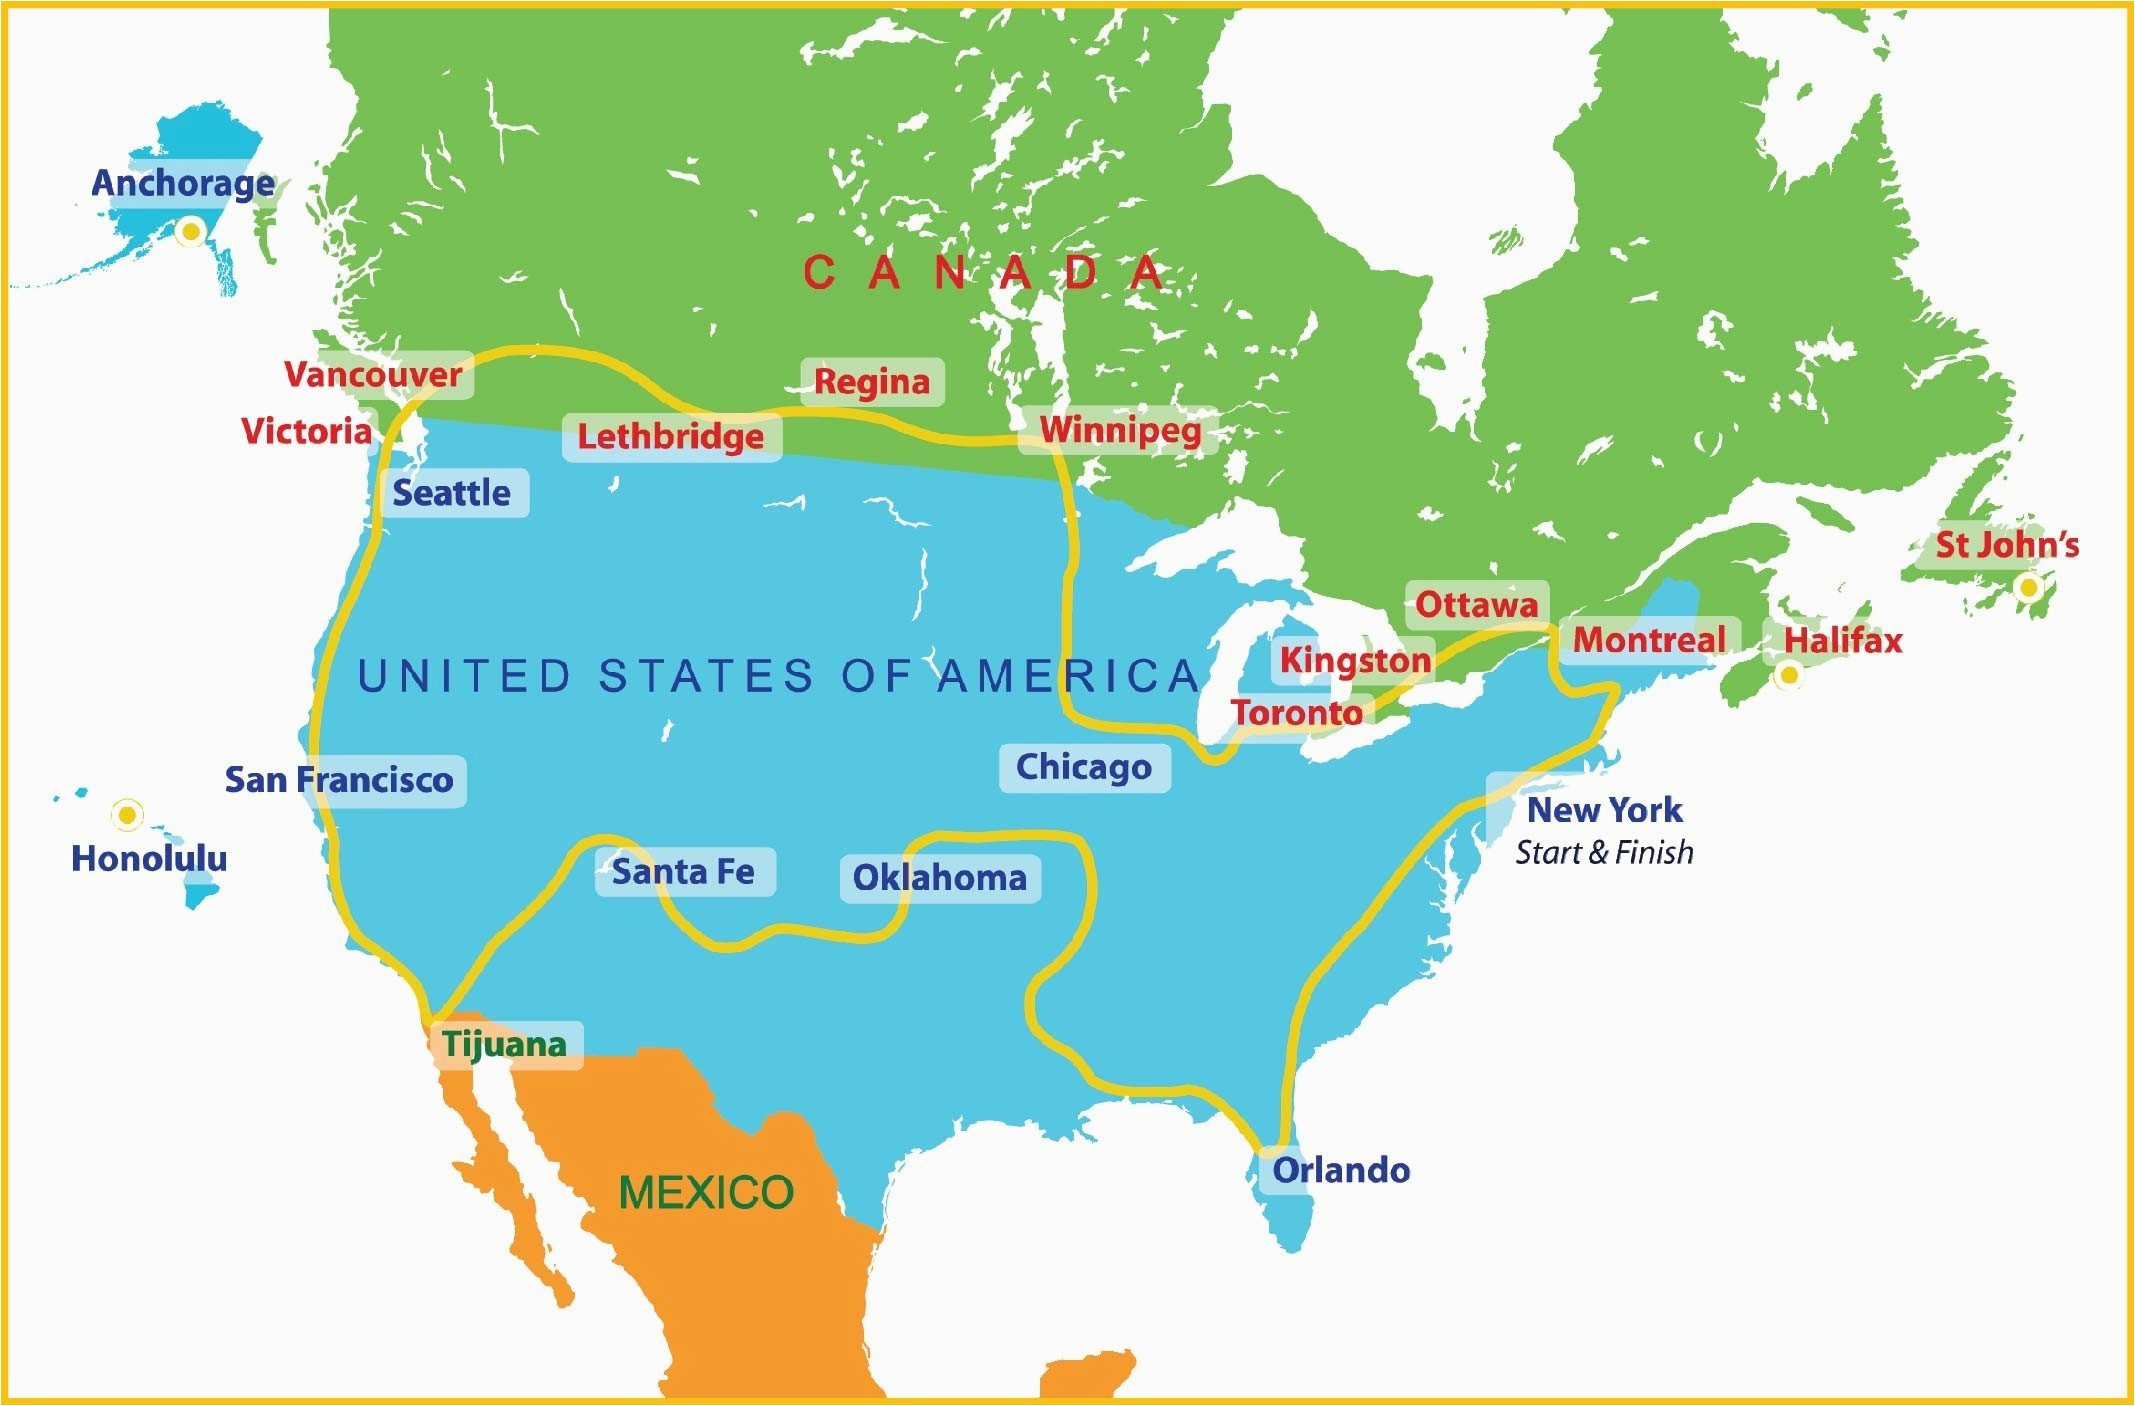 Ohio Map by City Us and Canada City Map Refrence Canada Map with Cities tourist